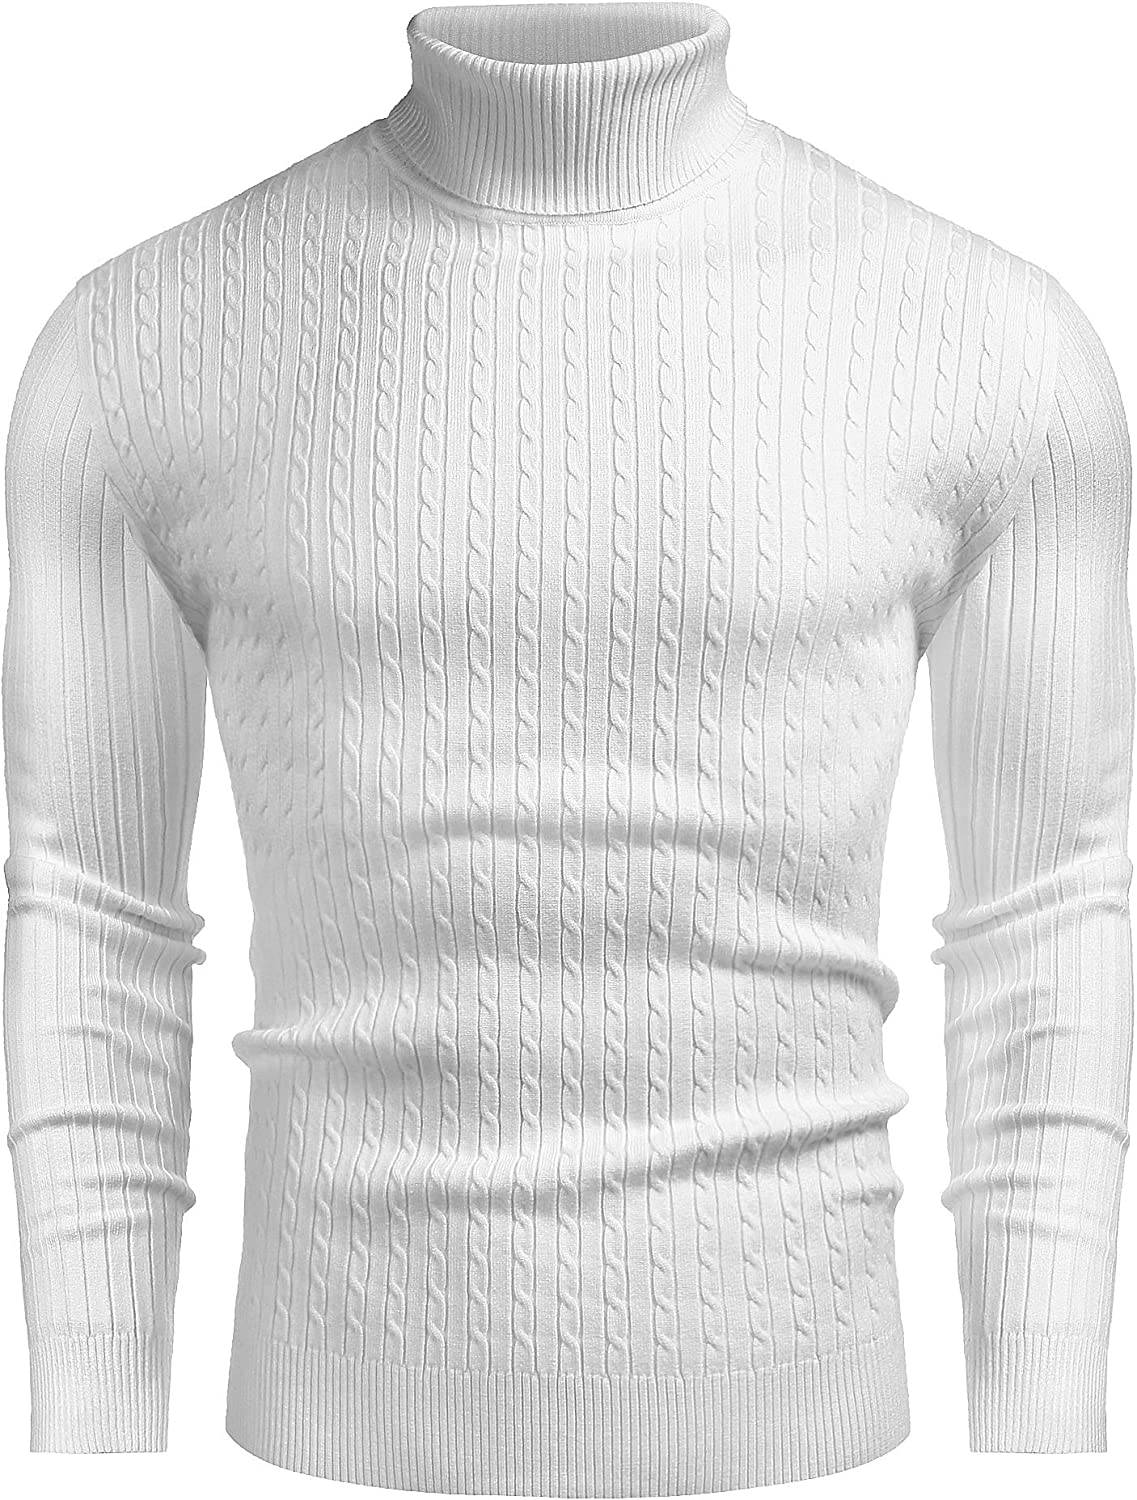 COOFANDY Men's Slim Fit Turtleneck Sweater Casual Twist Patterned Pullover Knitted Sweater